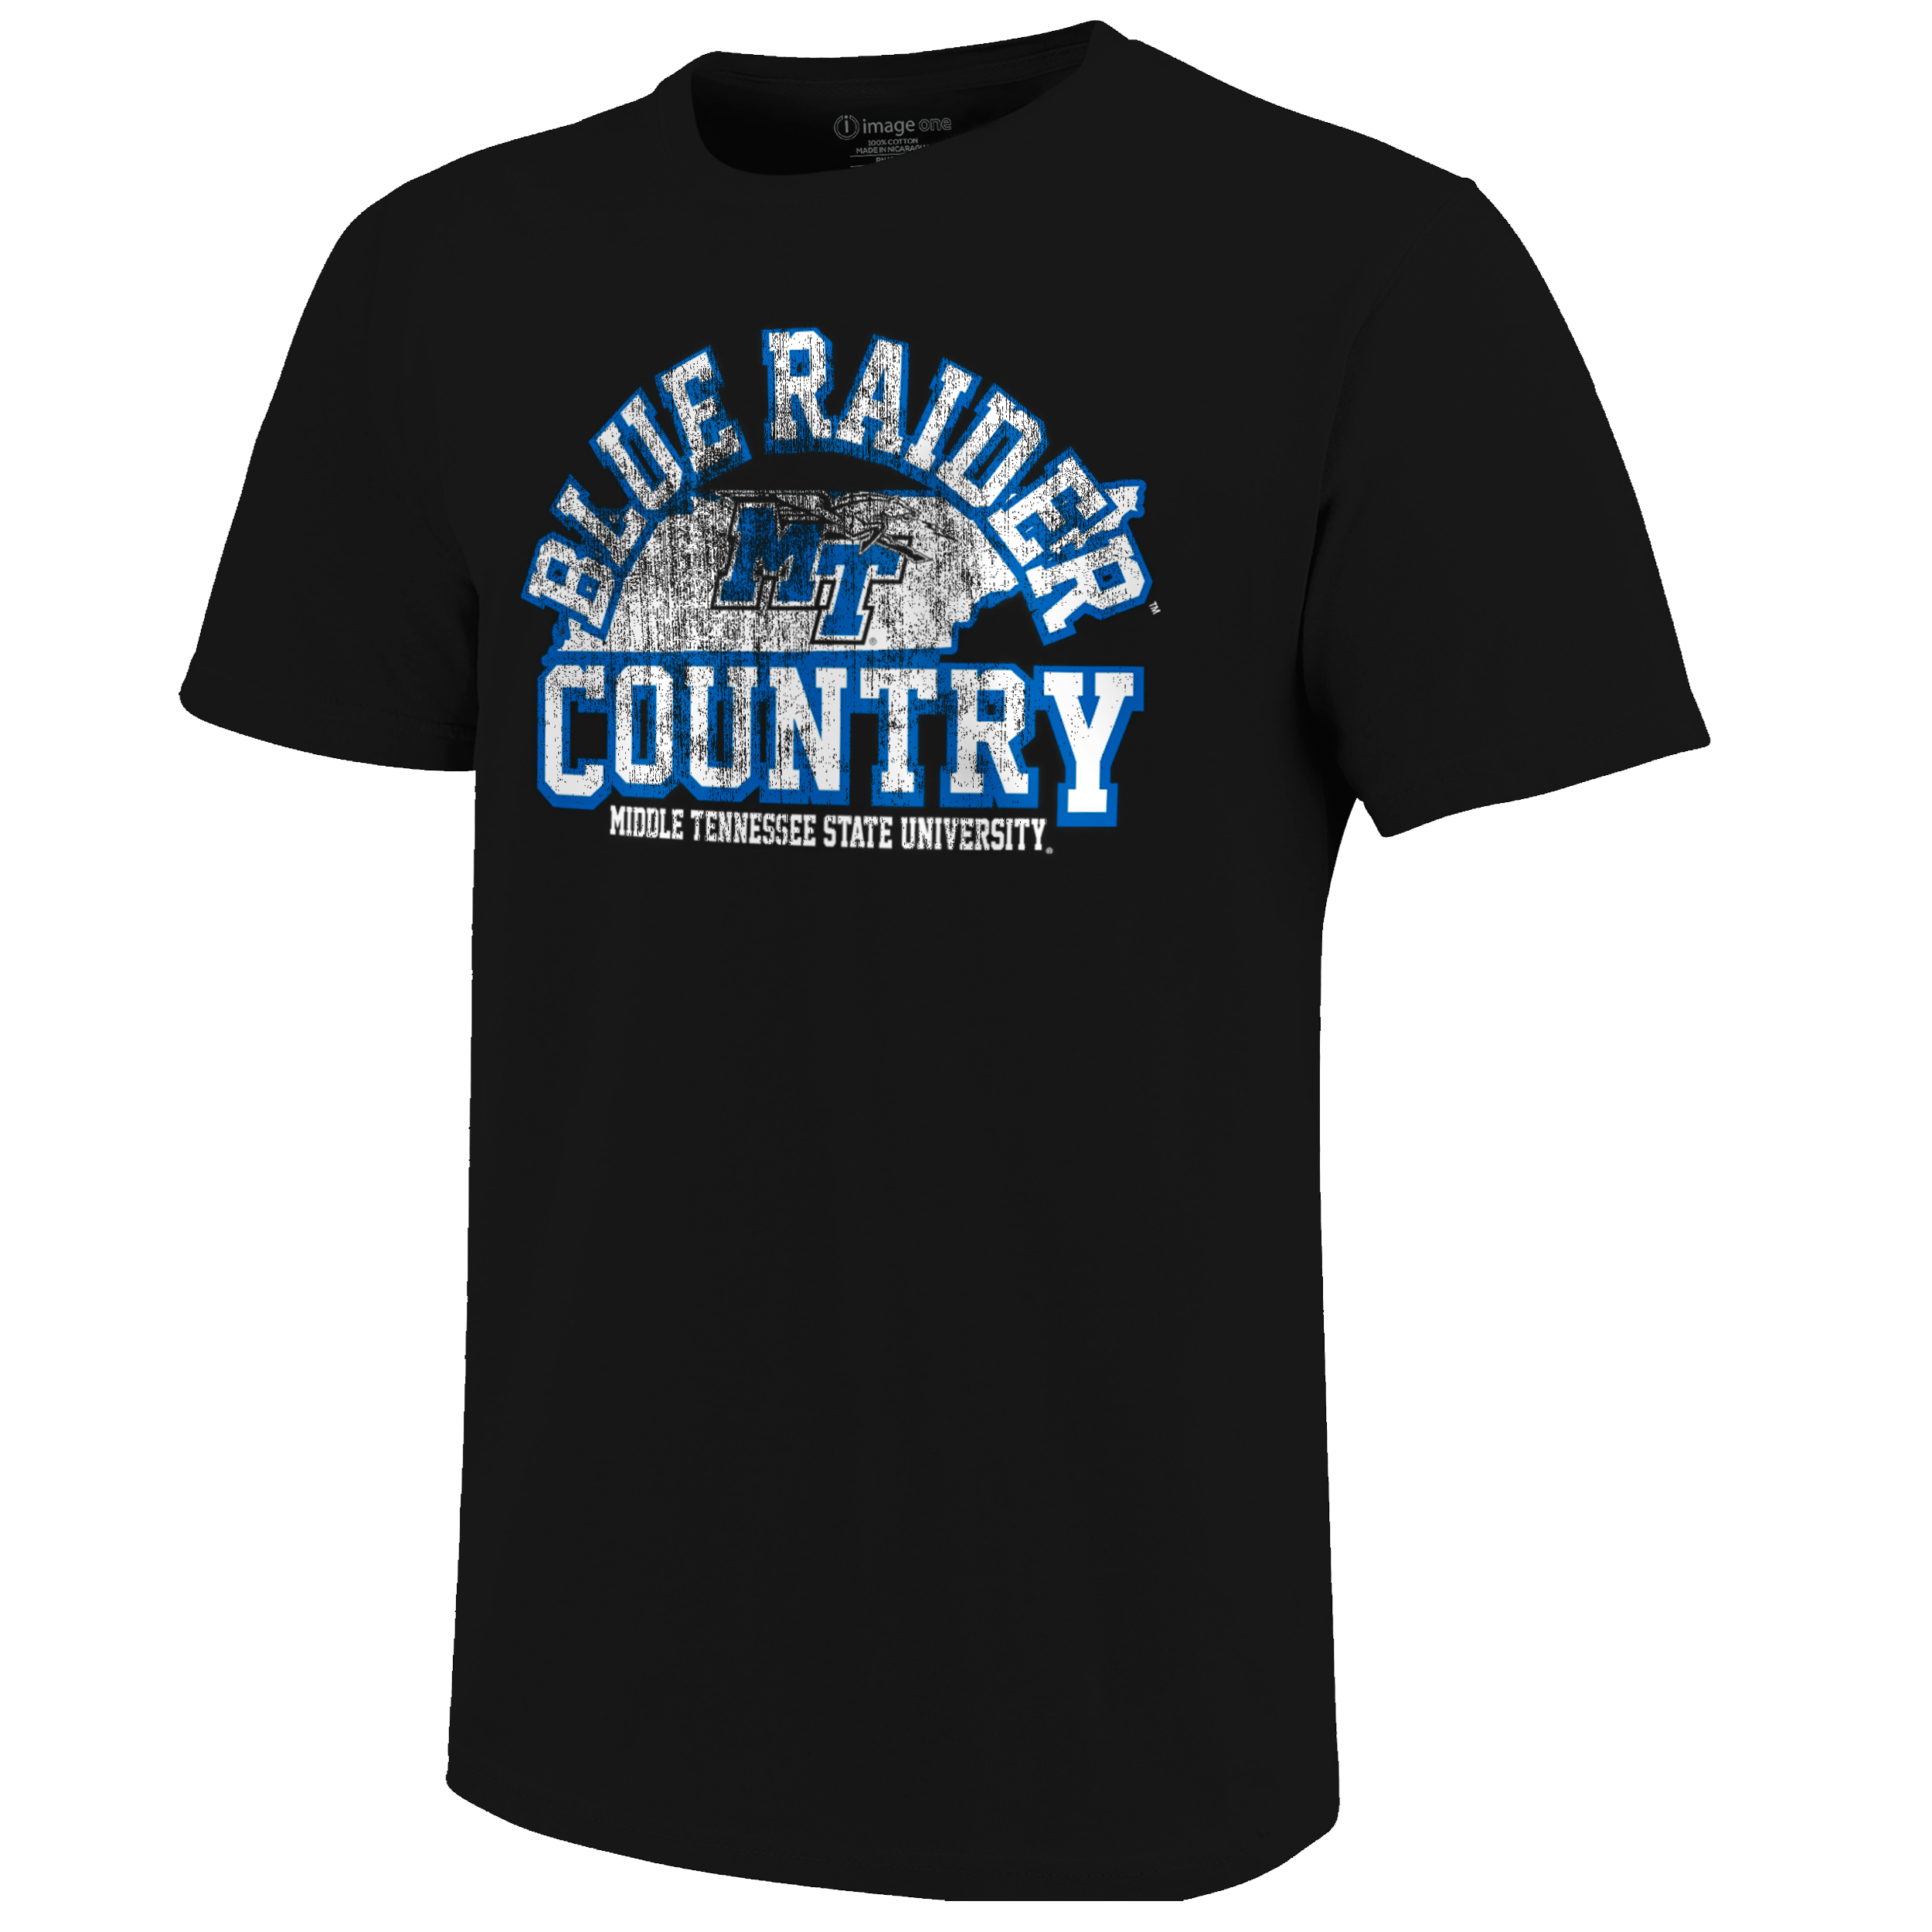 Blue Raider Country Tshirt